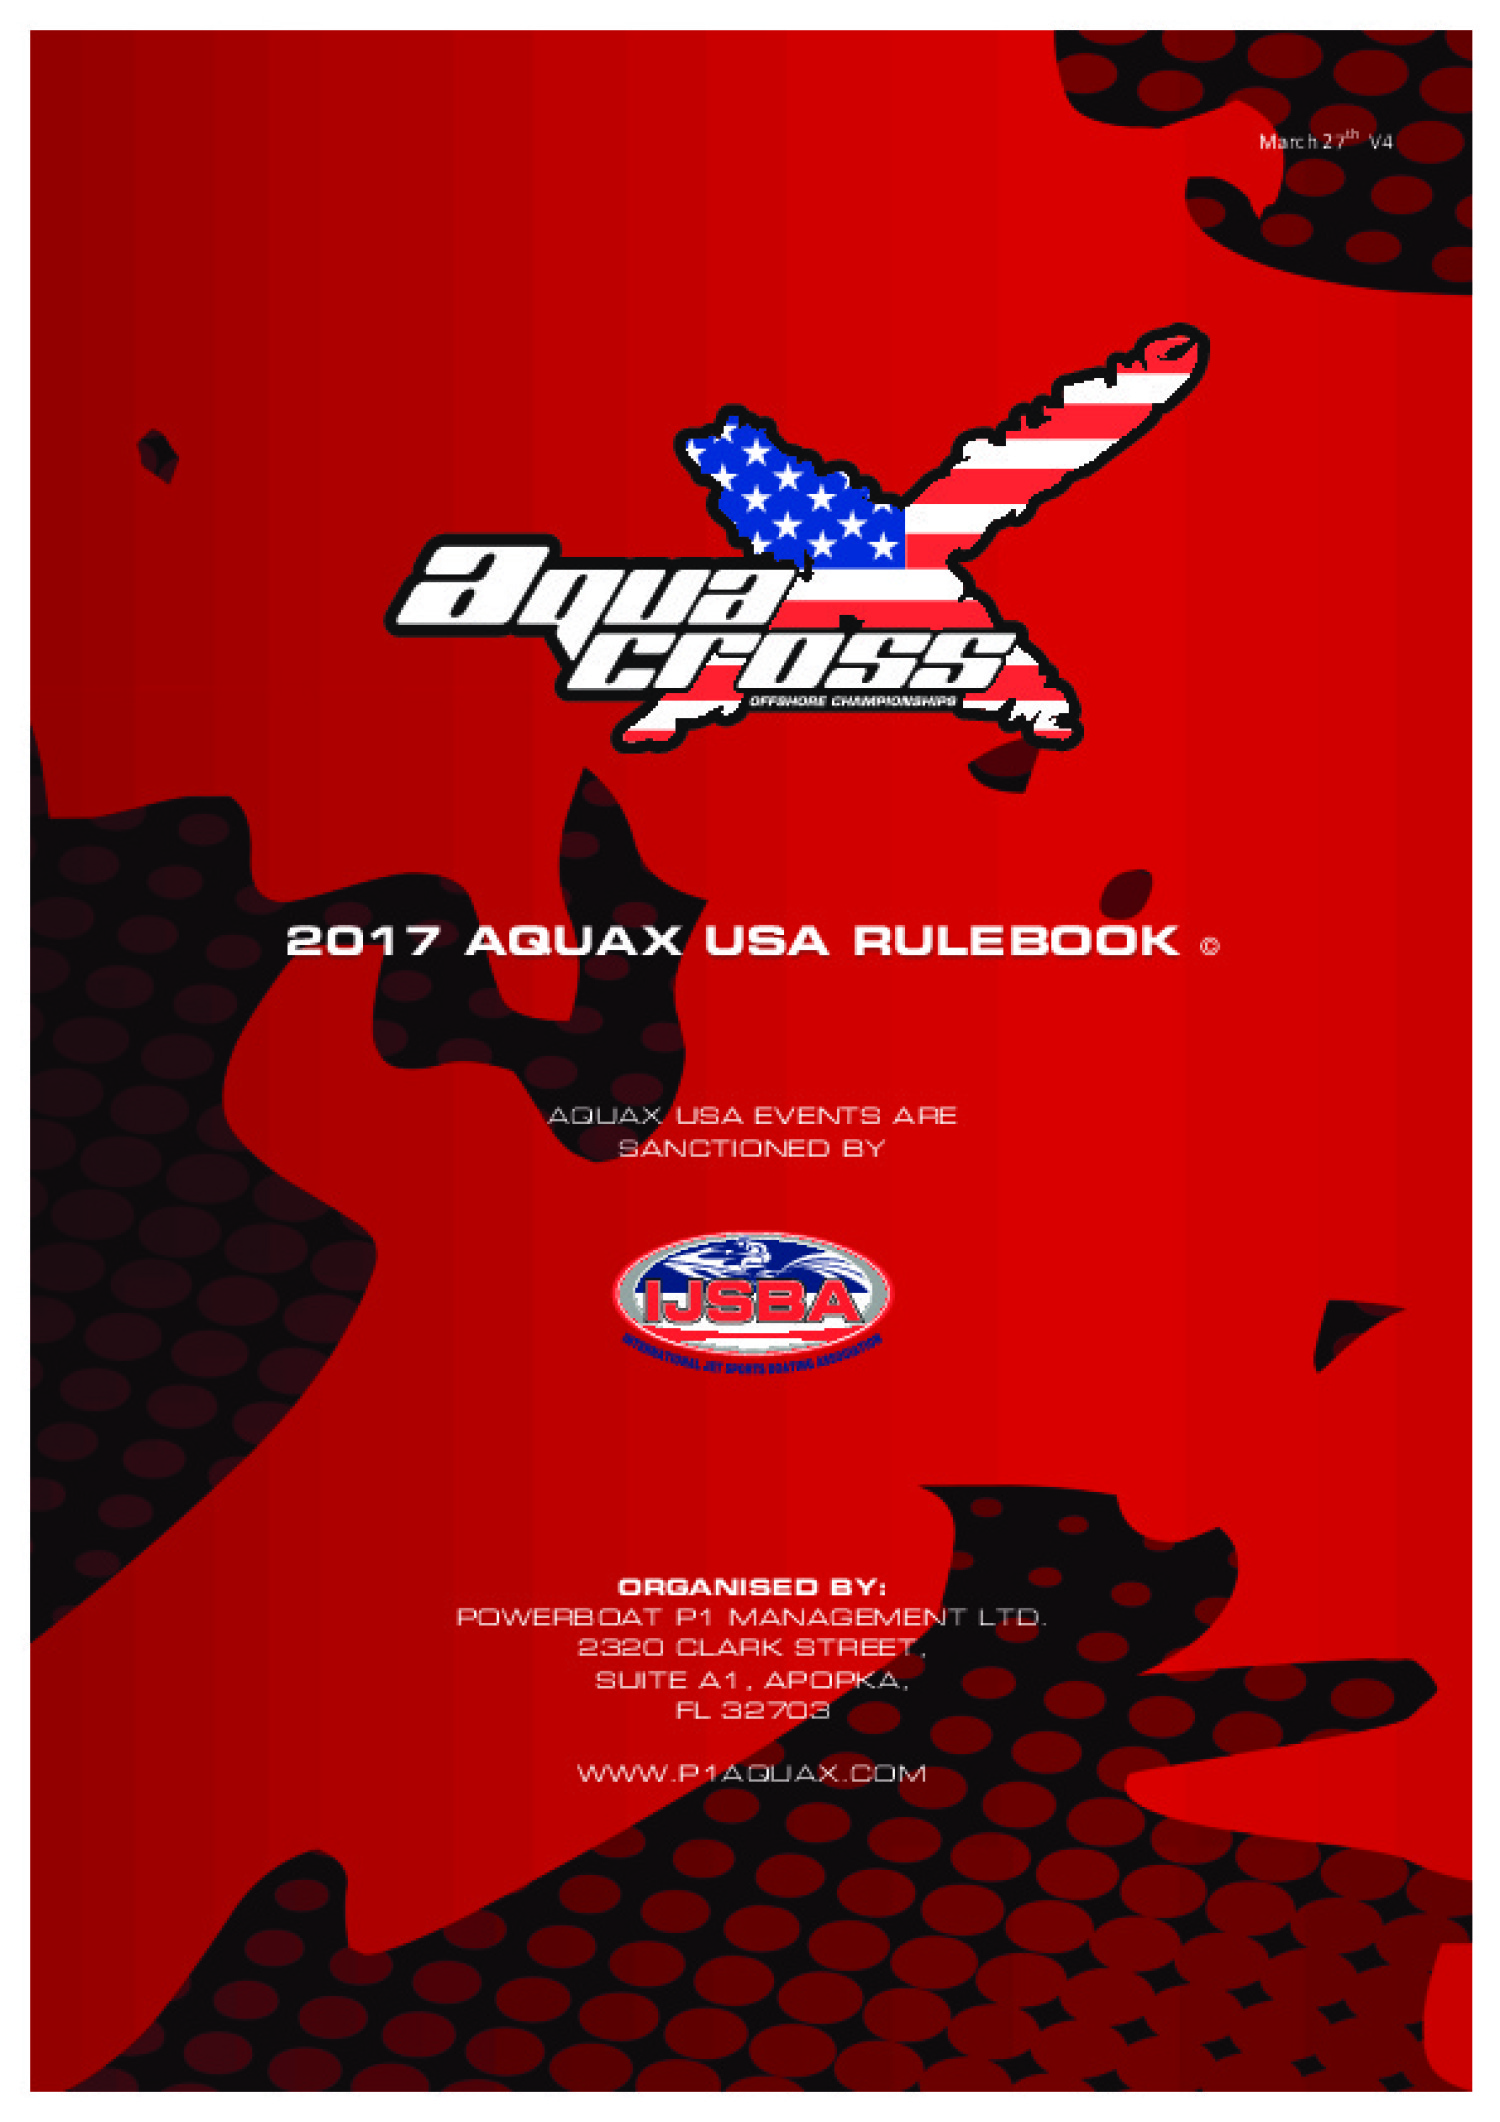 2017 AX USA rulebook V4 Mar 27th